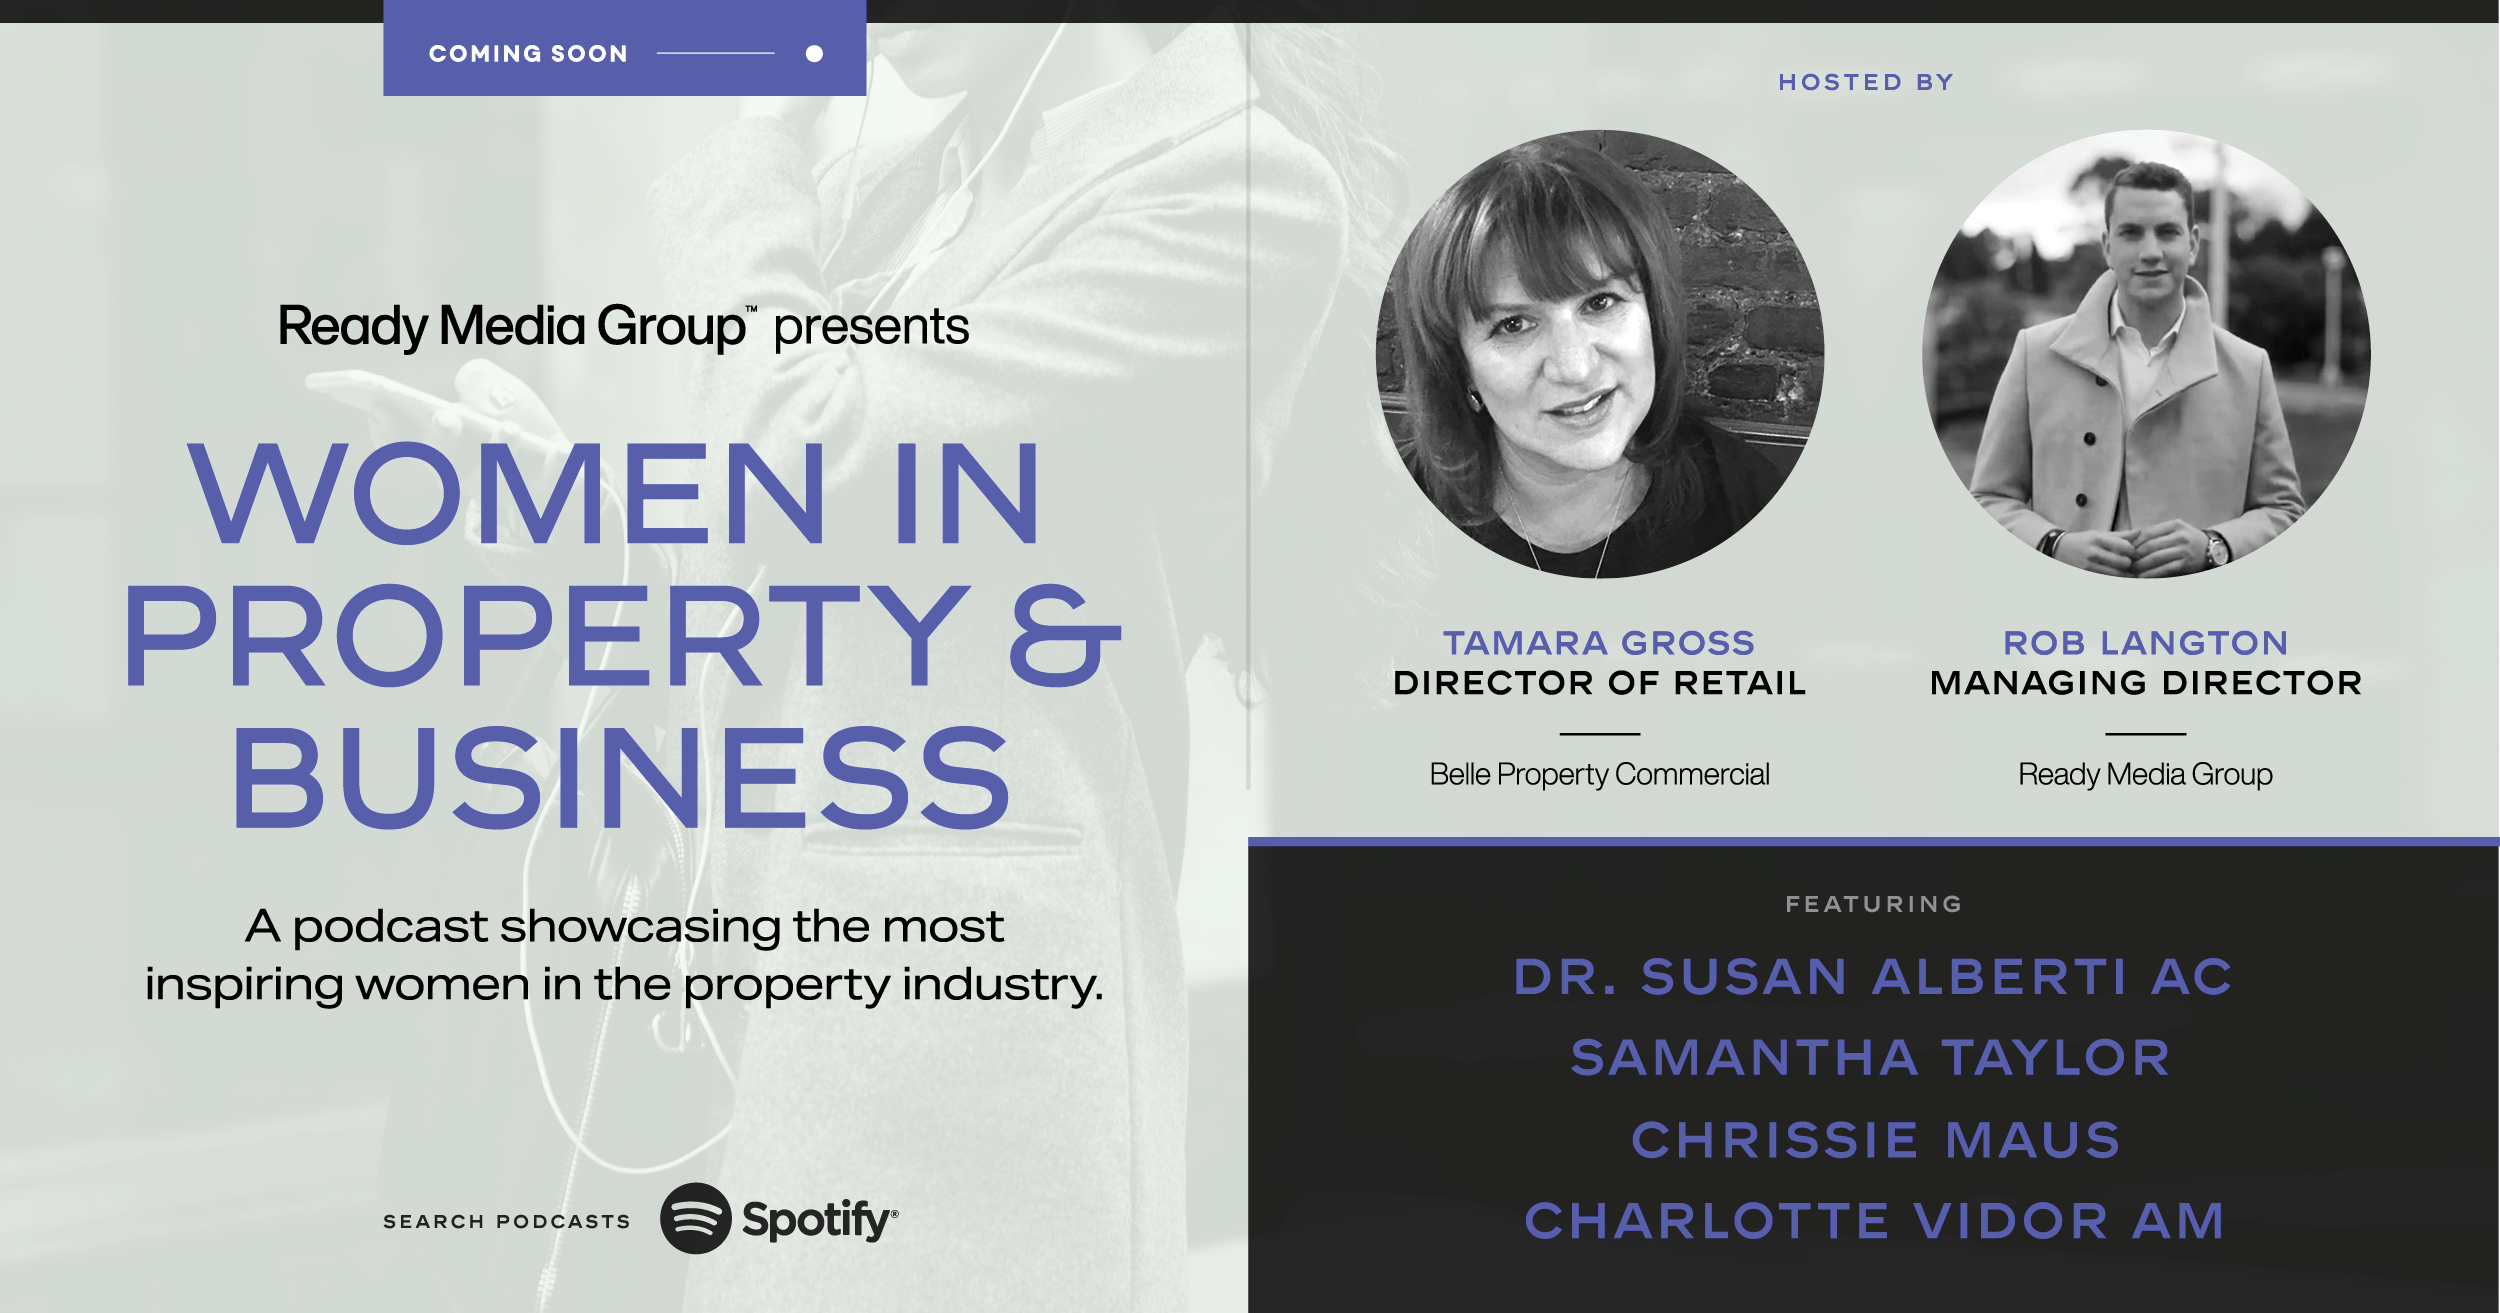 New Series - Women in Property & Business